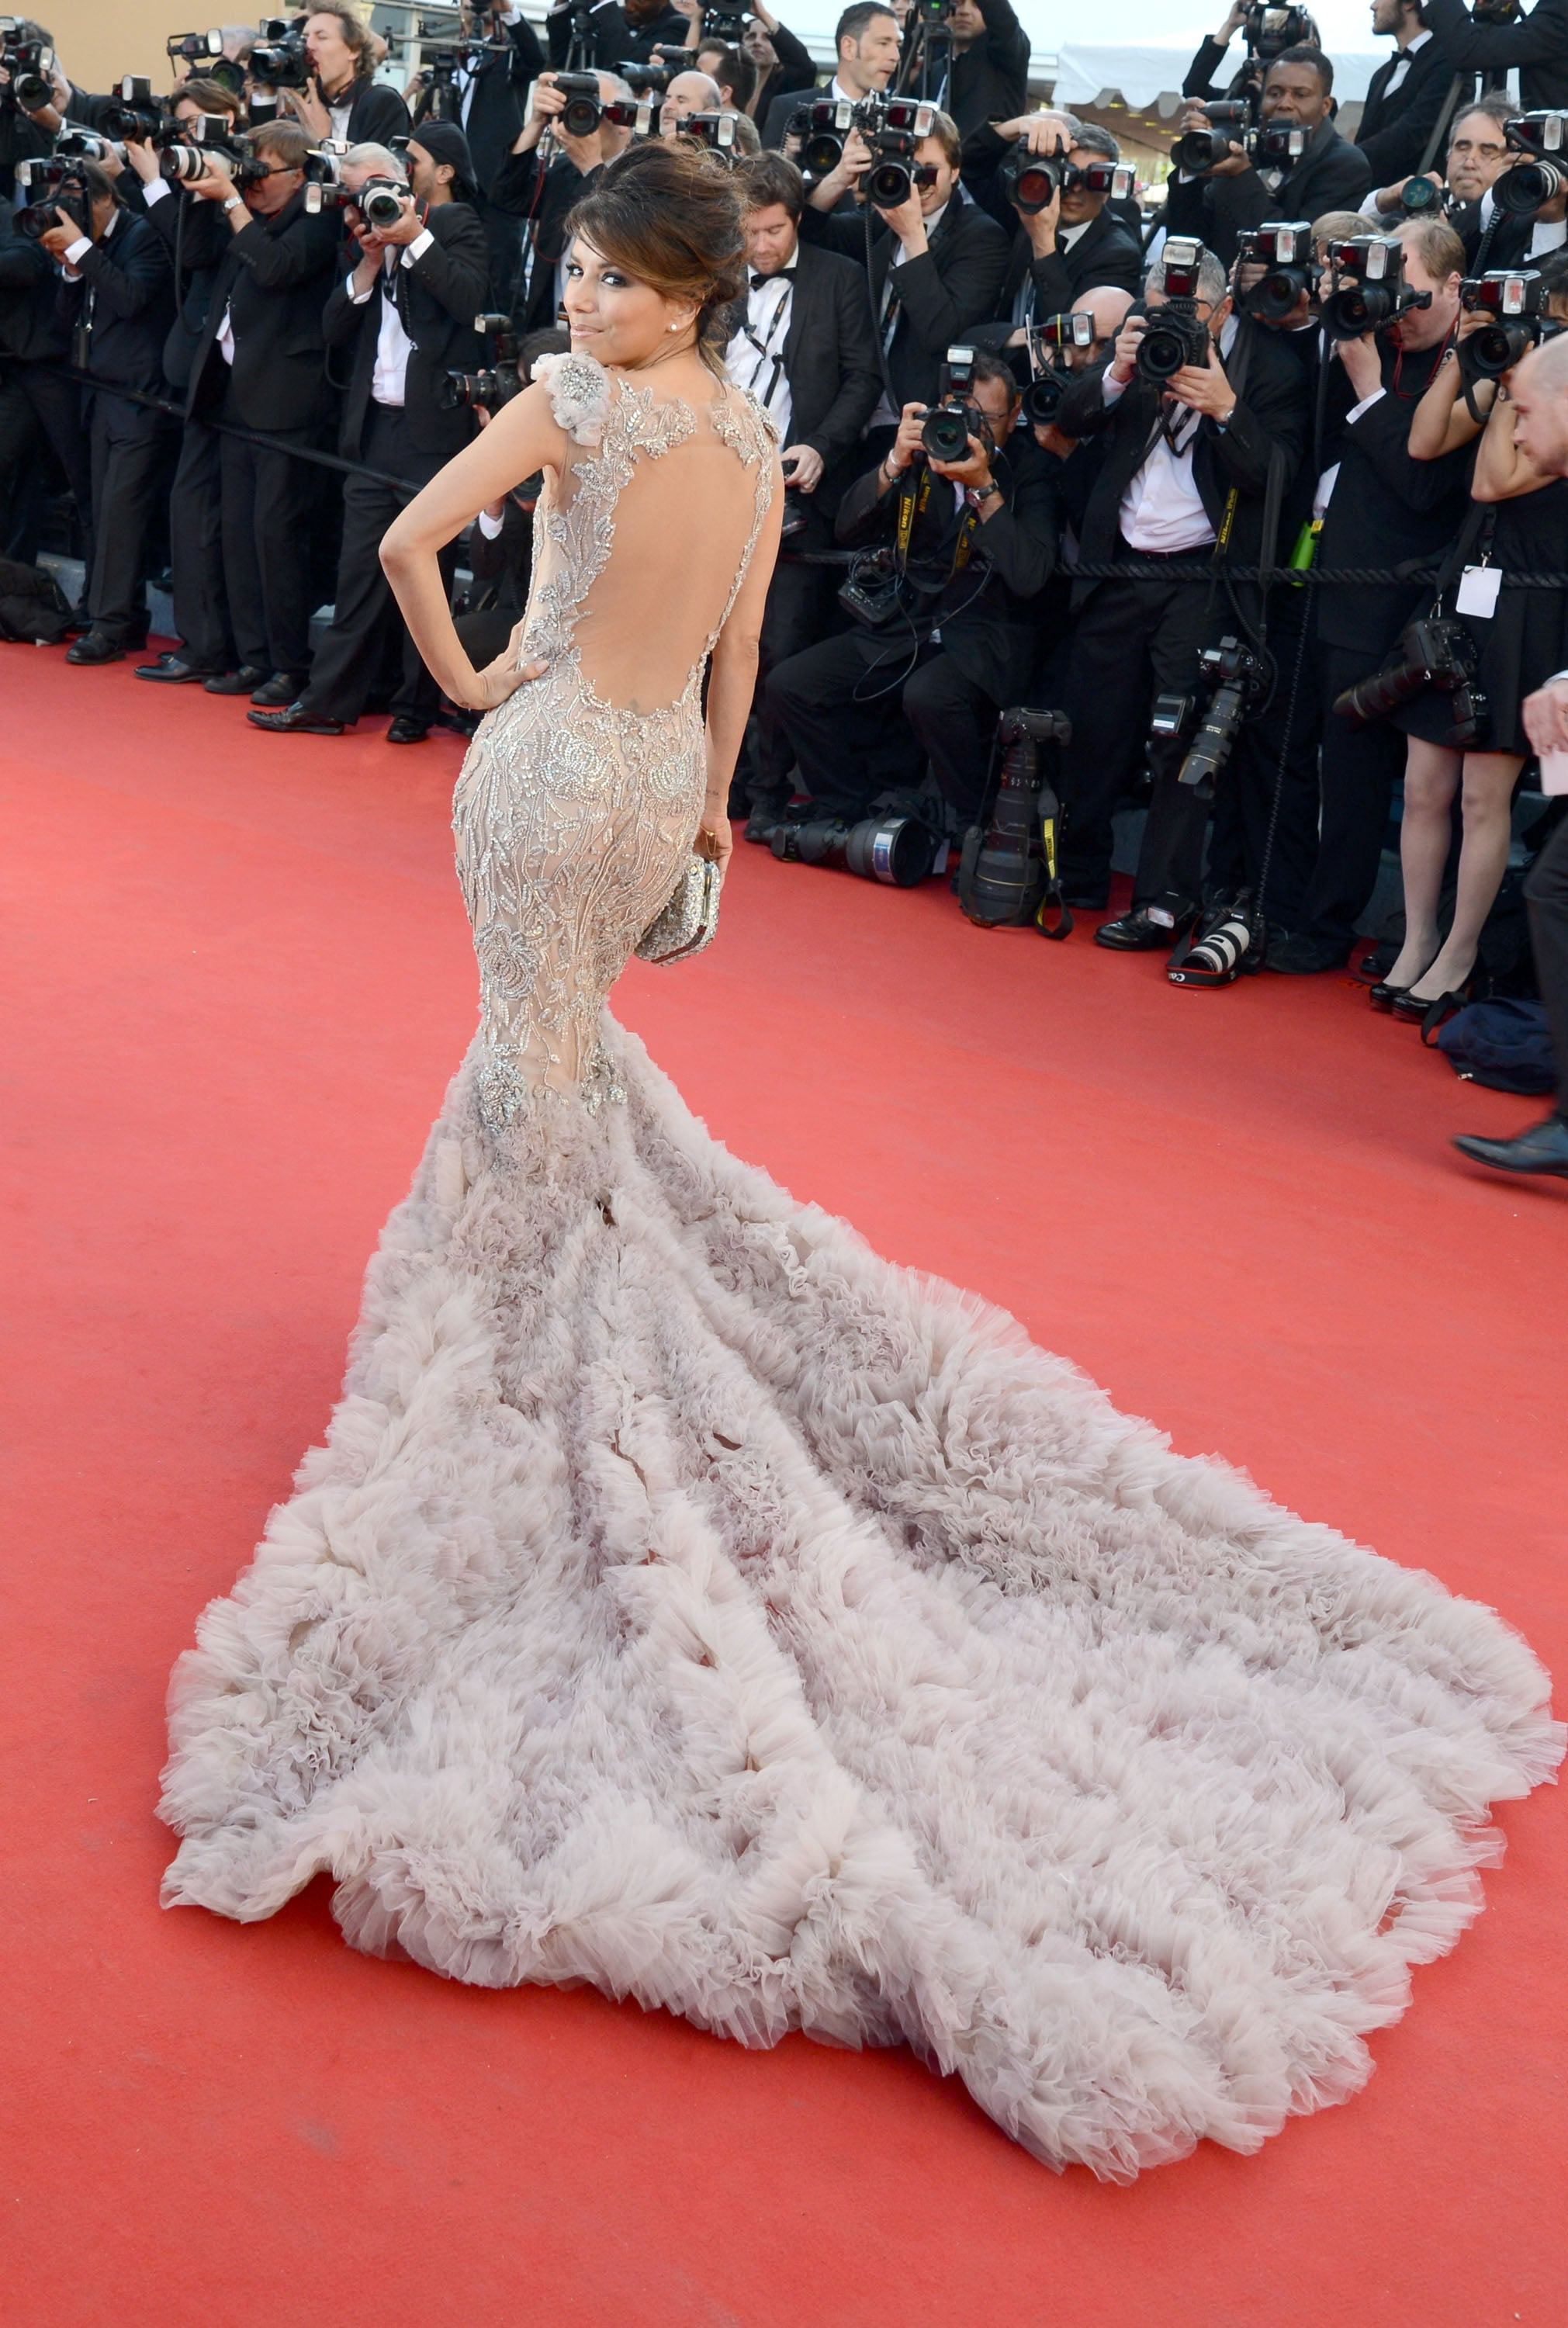 The train of the Marchesa gown Eva Longoria wore to the 2012 Cannes premiere of Moonrise Kingdom got a lot of attention.